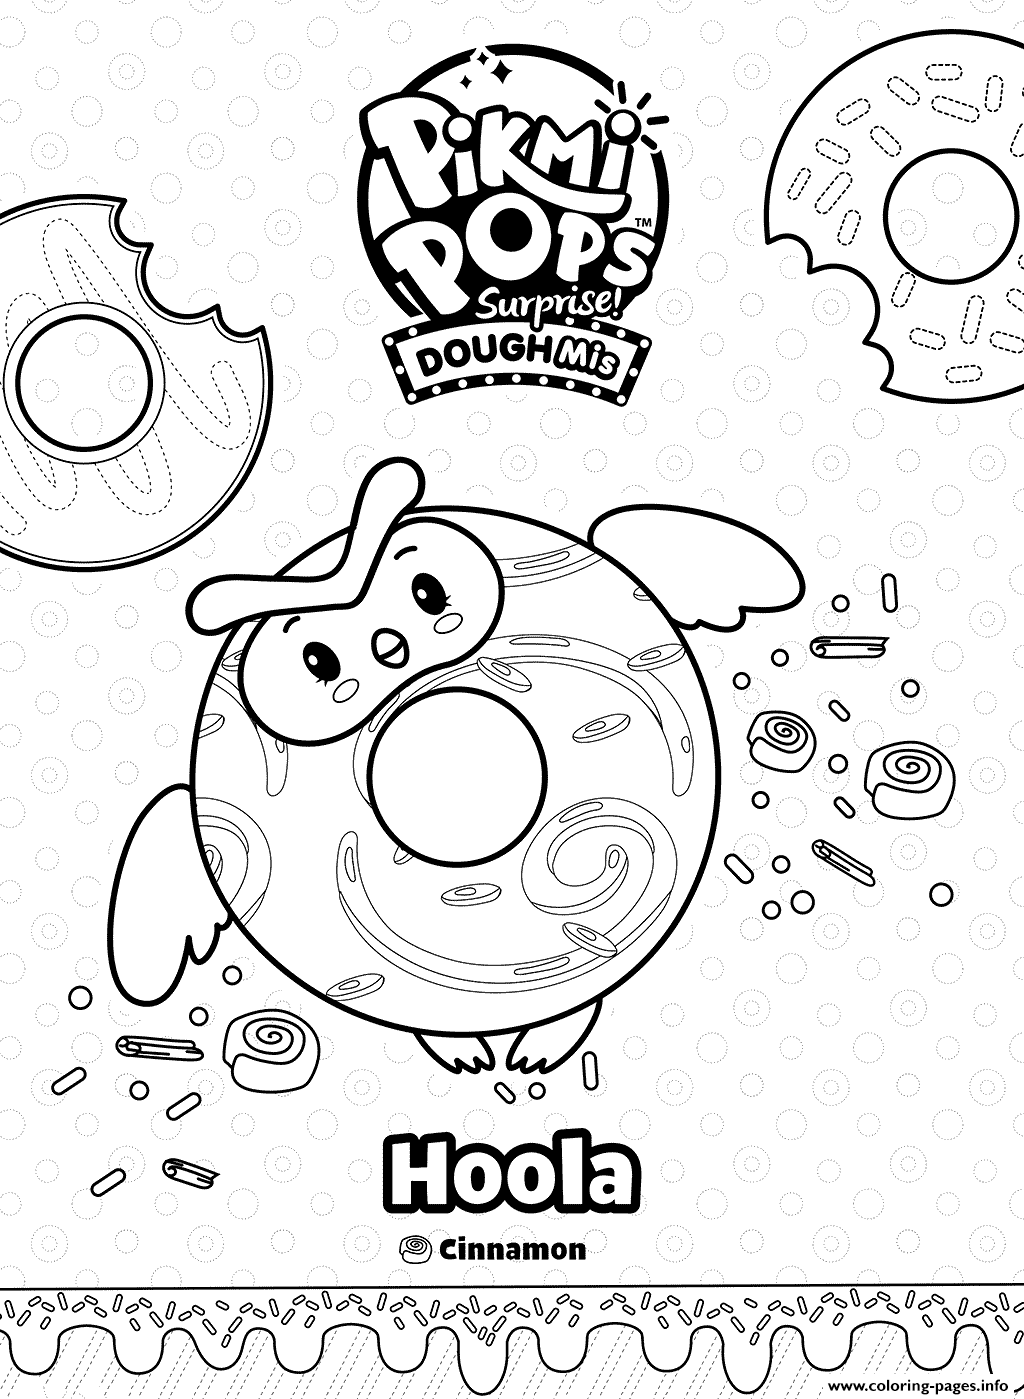 Doughnut Pikmi Pops Hoola The Owl Coloring Pages Printable